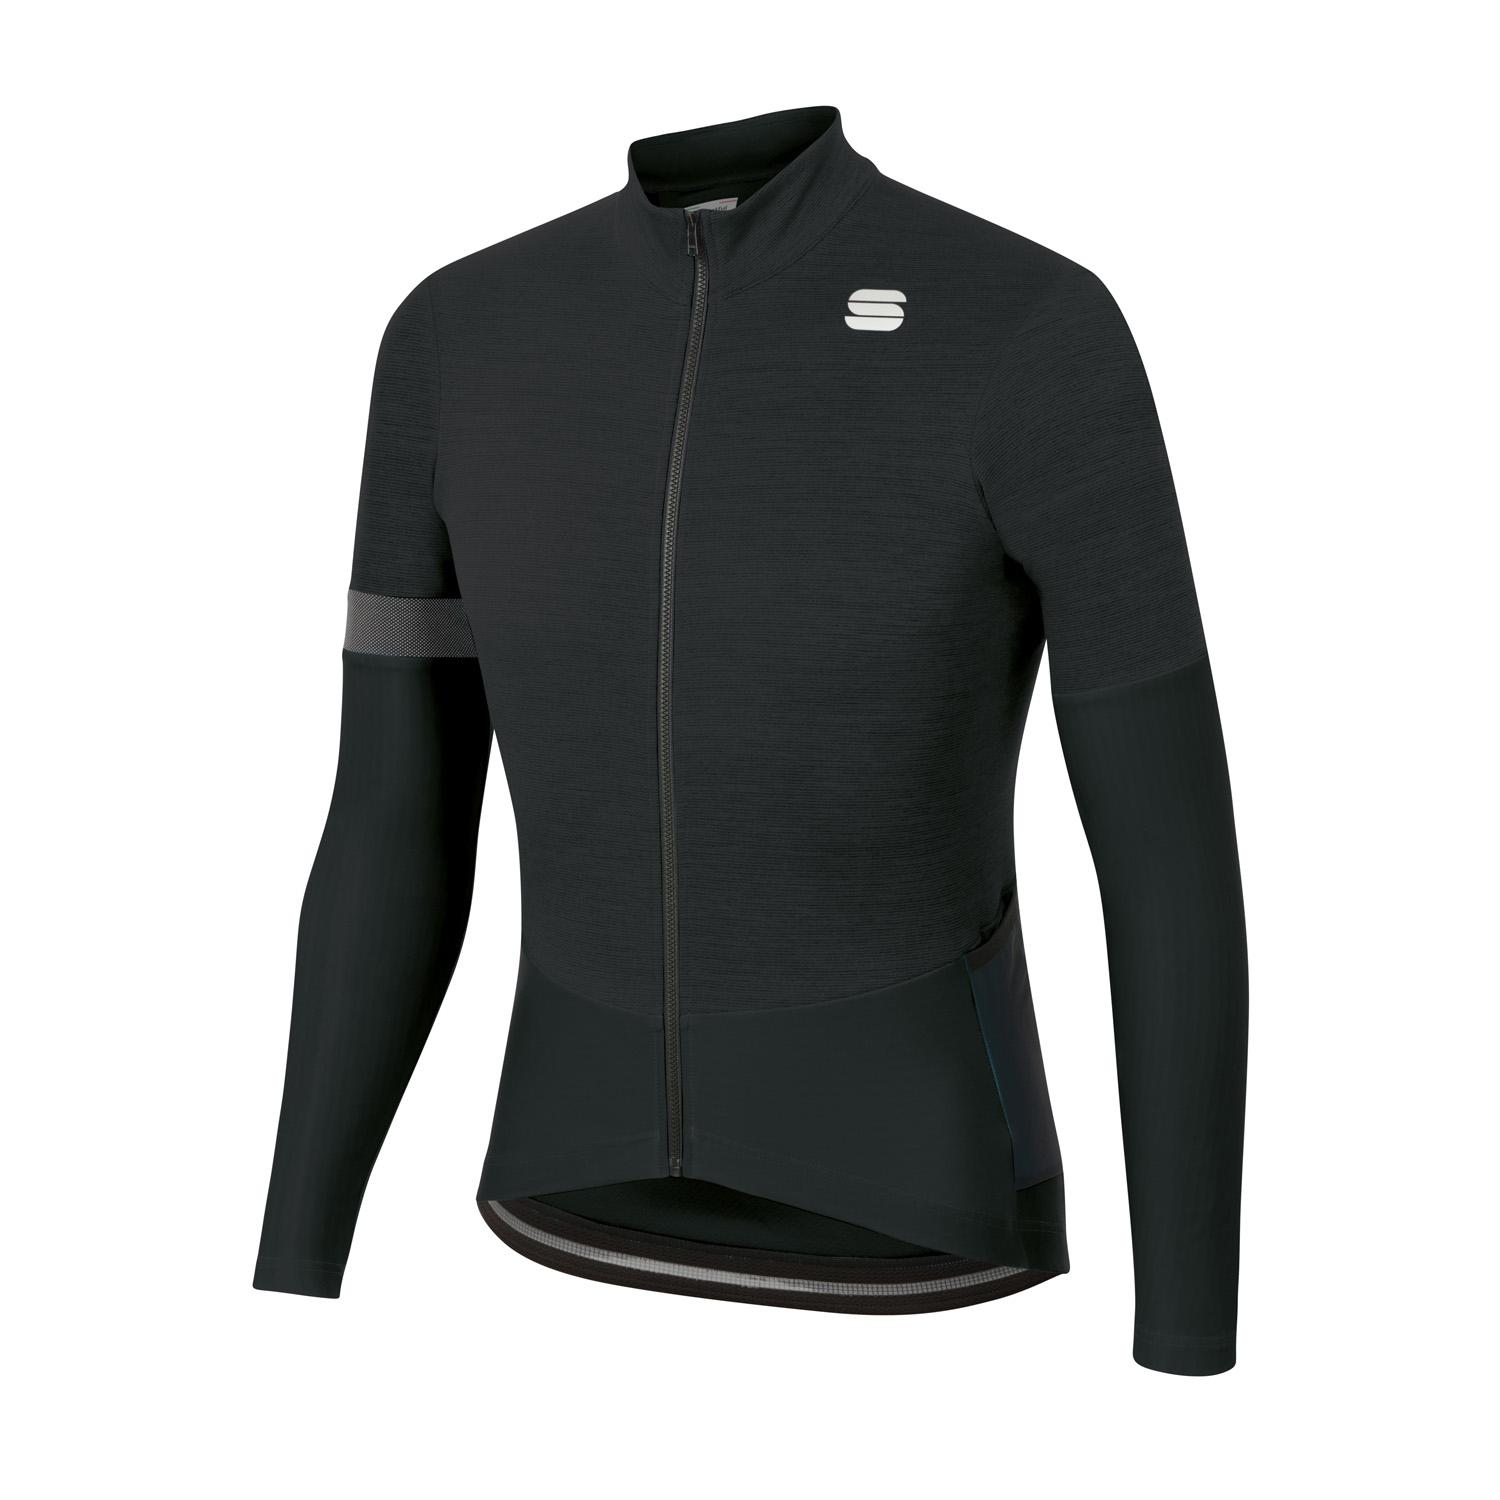 Sportful Fietsshirt lange mouwen Heren Zwart - SUPERGIARA THERMAL JERSEY BLACK